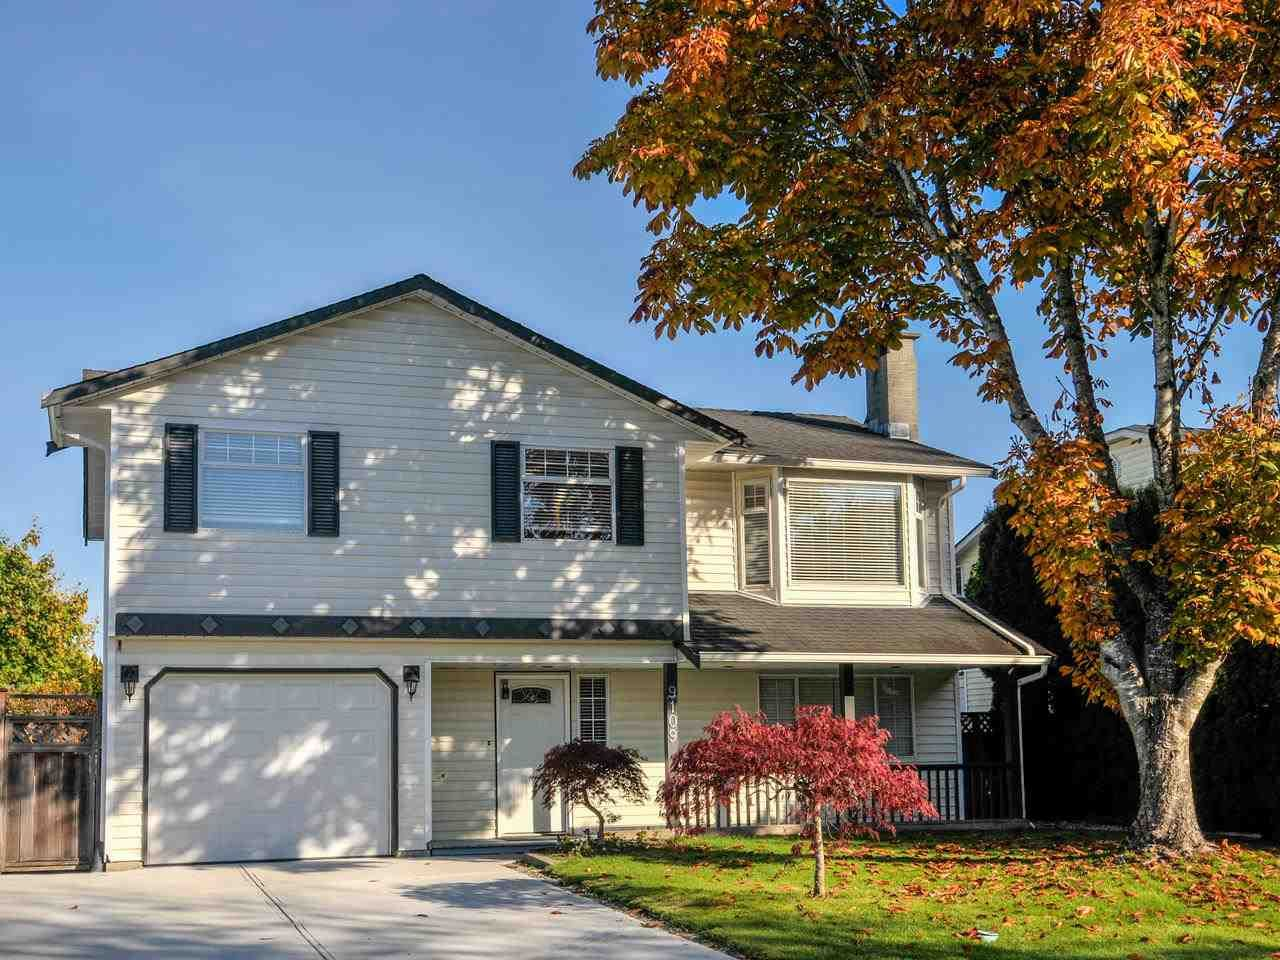 Main Photo: 9109 212A Place in Langley: Walnut Grove House for sale : MLS®# R2316767